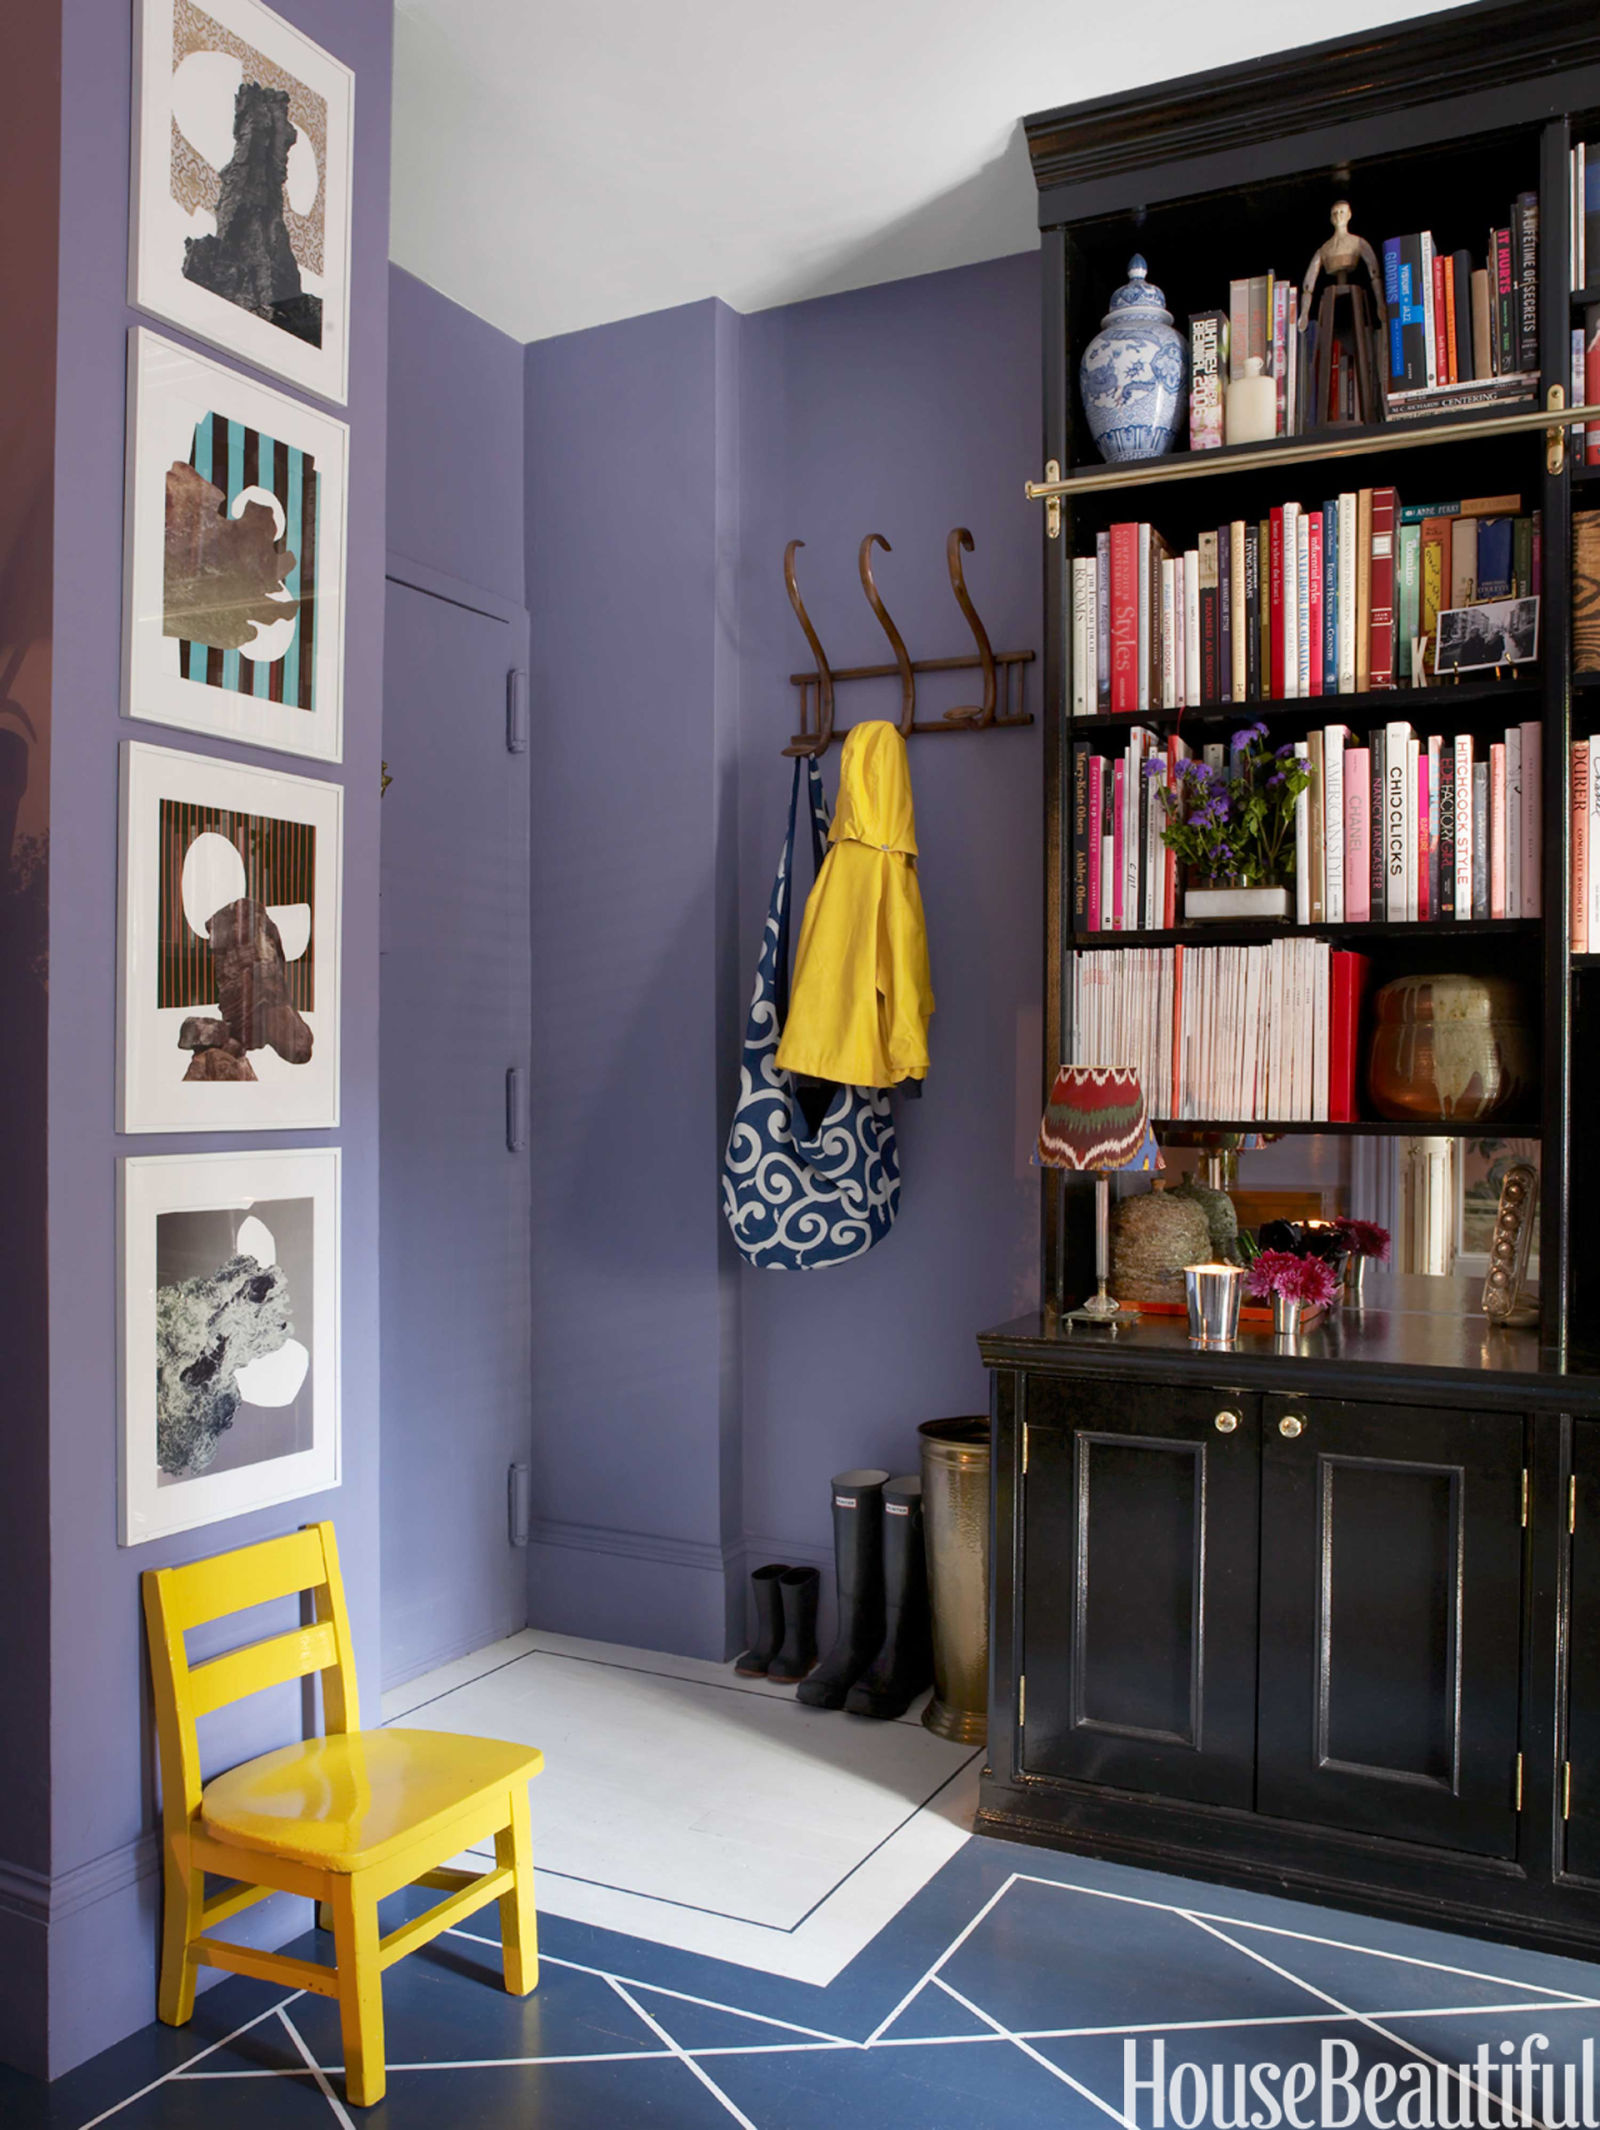 Room Space Ideas 11 small space design ideas - how to make the most of a small space